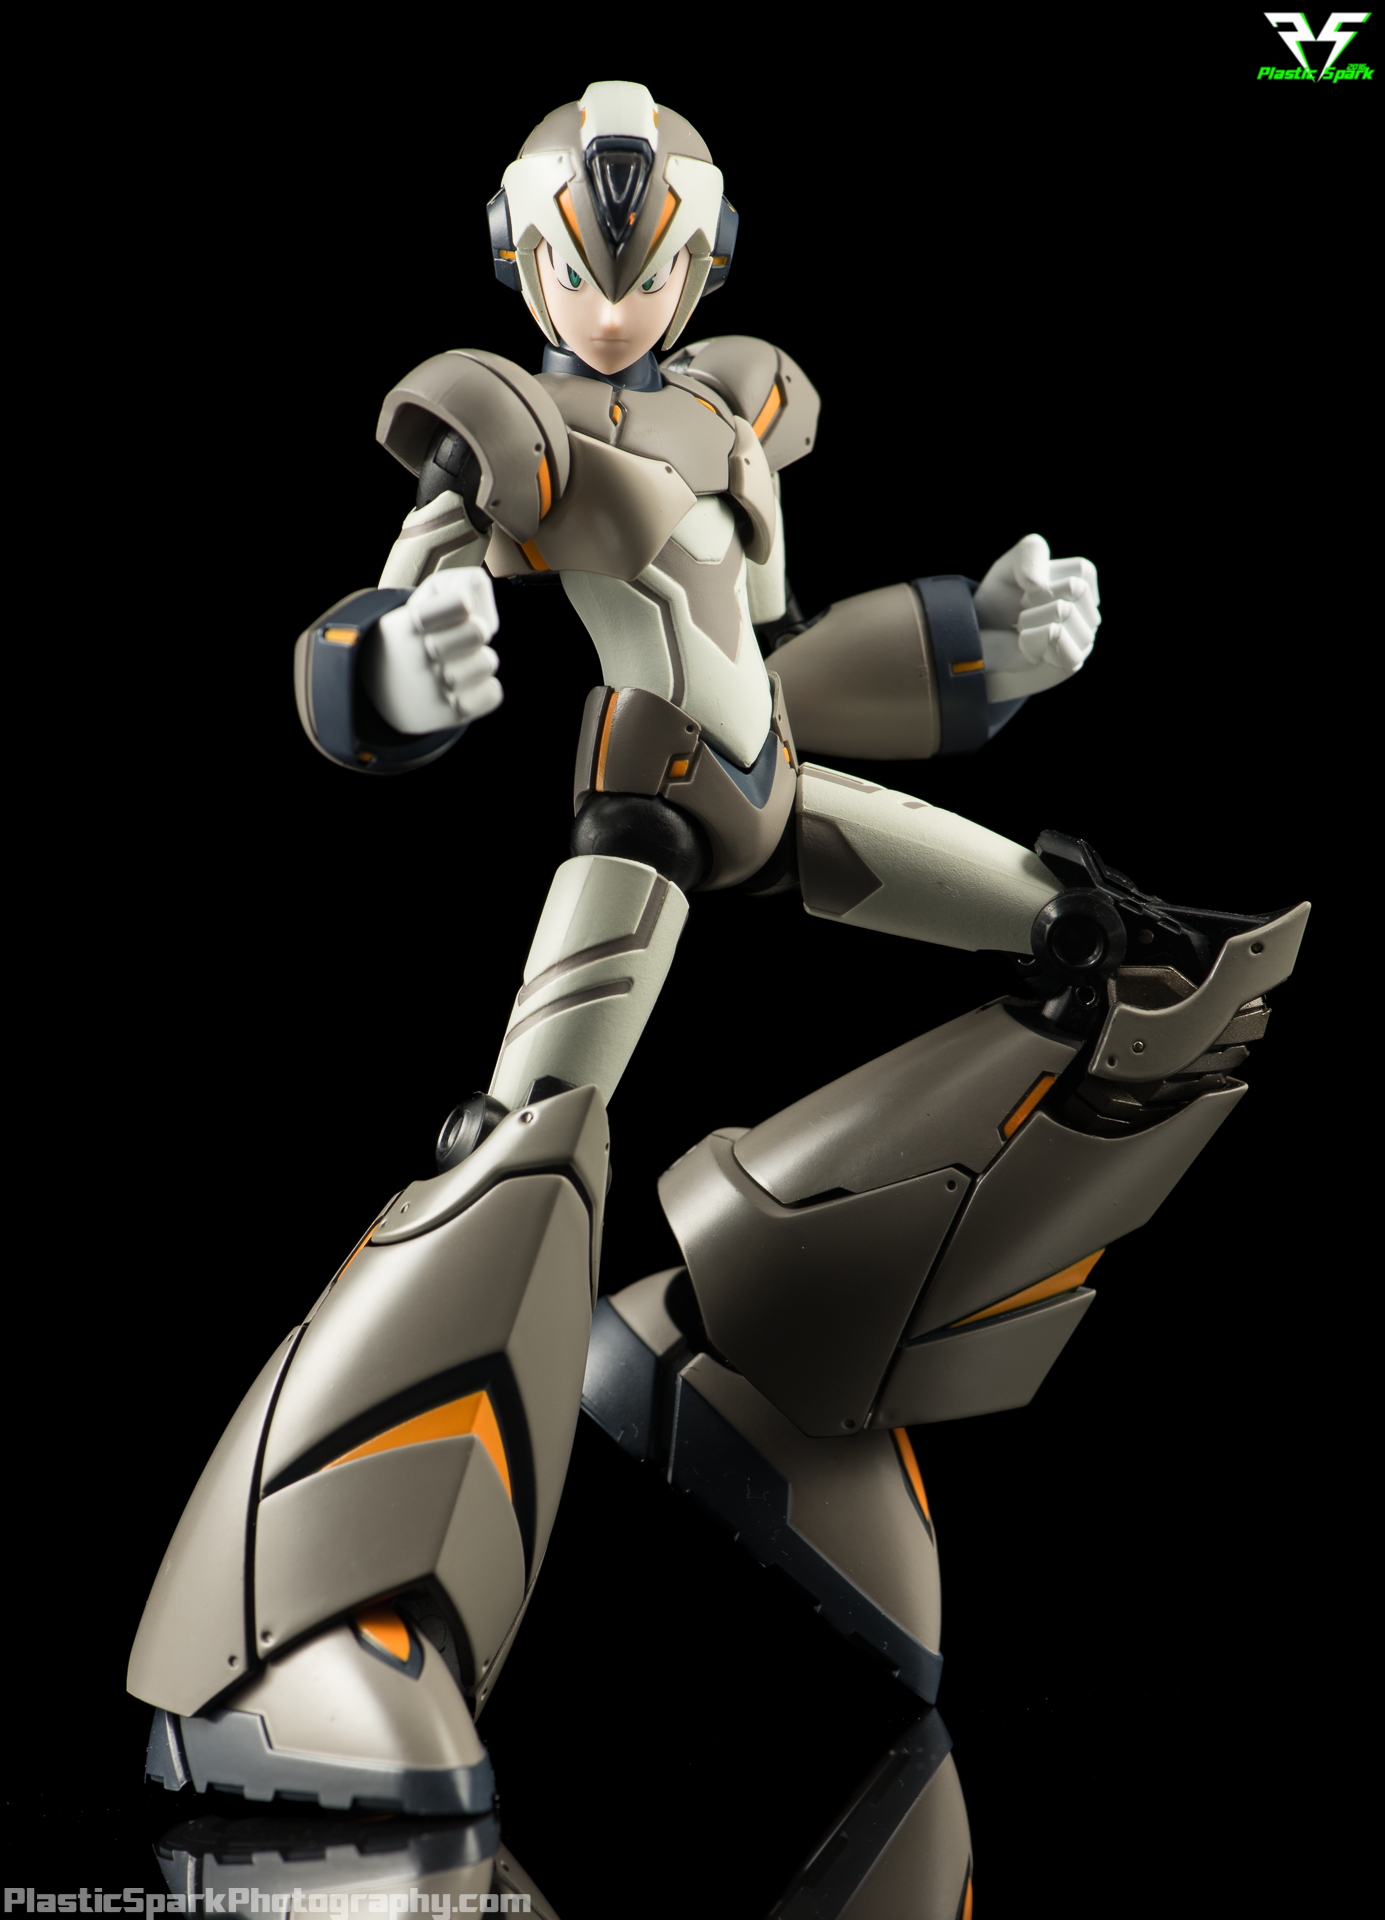 Truforce-Megaman-X-KS-Variant-(1-of-3).png